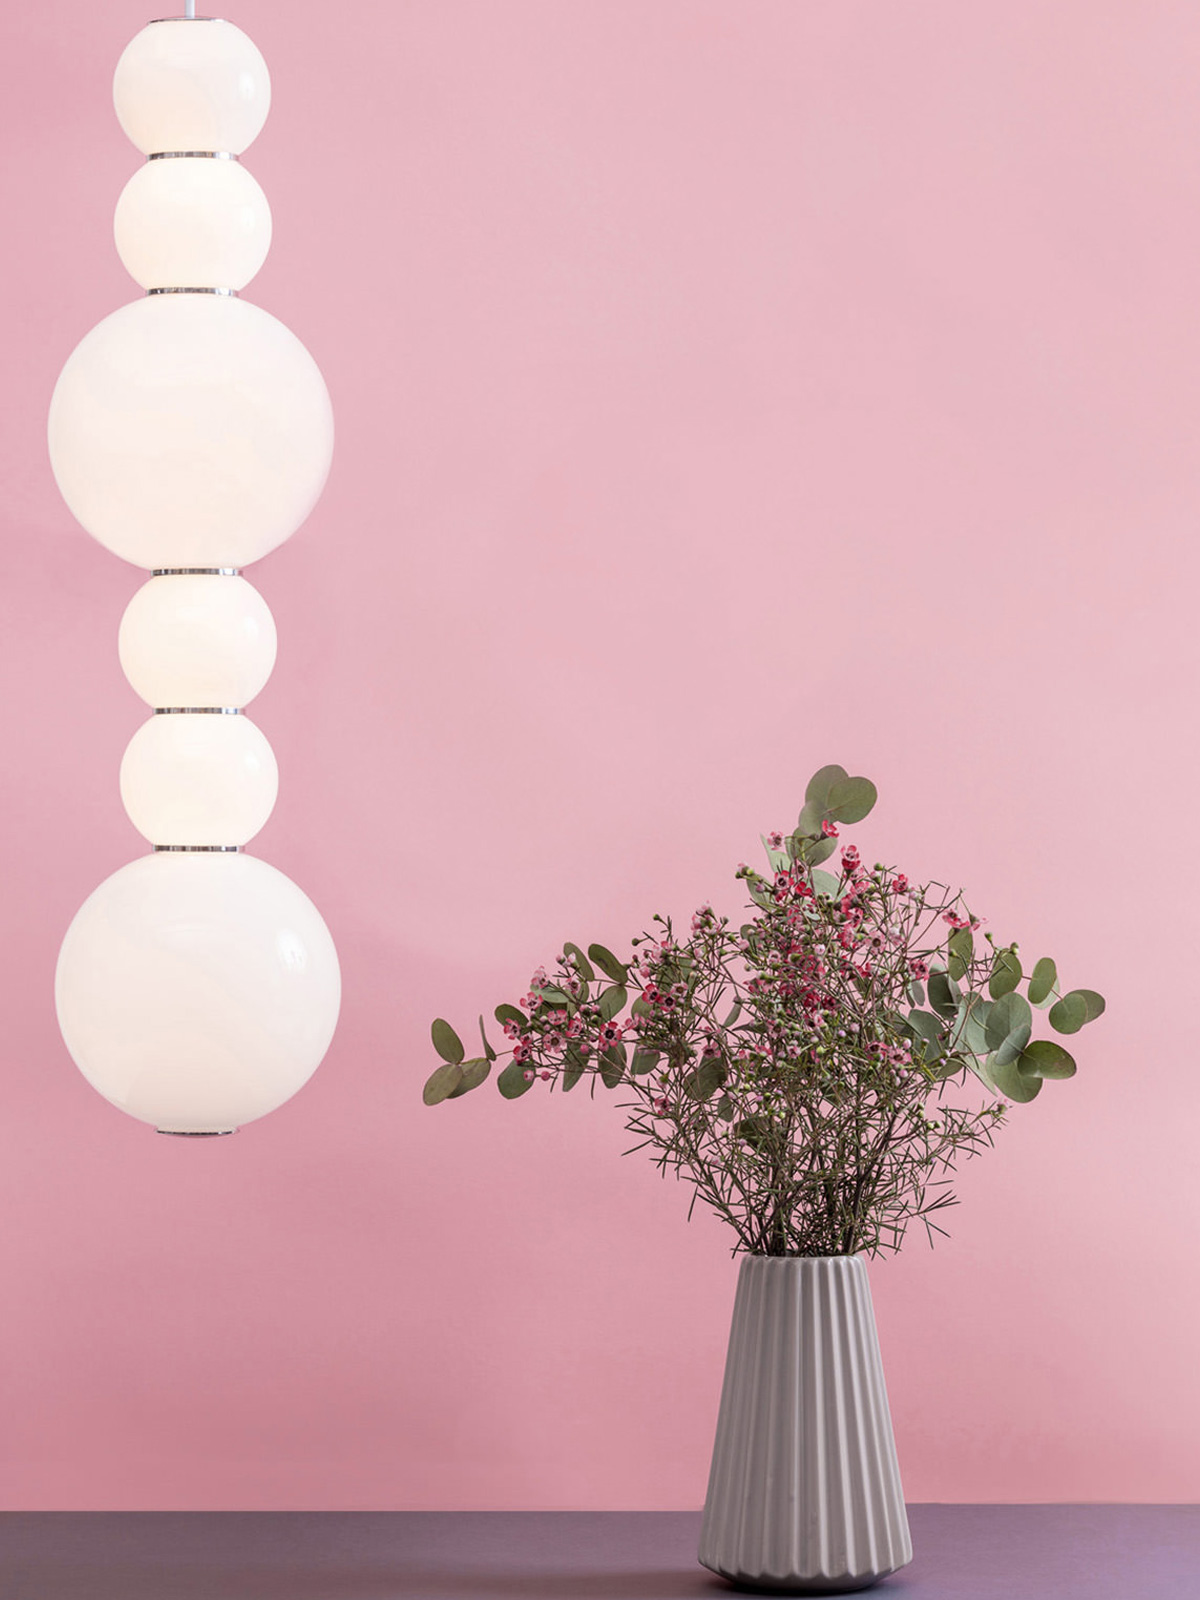 DesignOrt Blog: Neue Designerlampen Pendel Lampe Pearls Double Opalglas LED von Formagenda Made in Germany